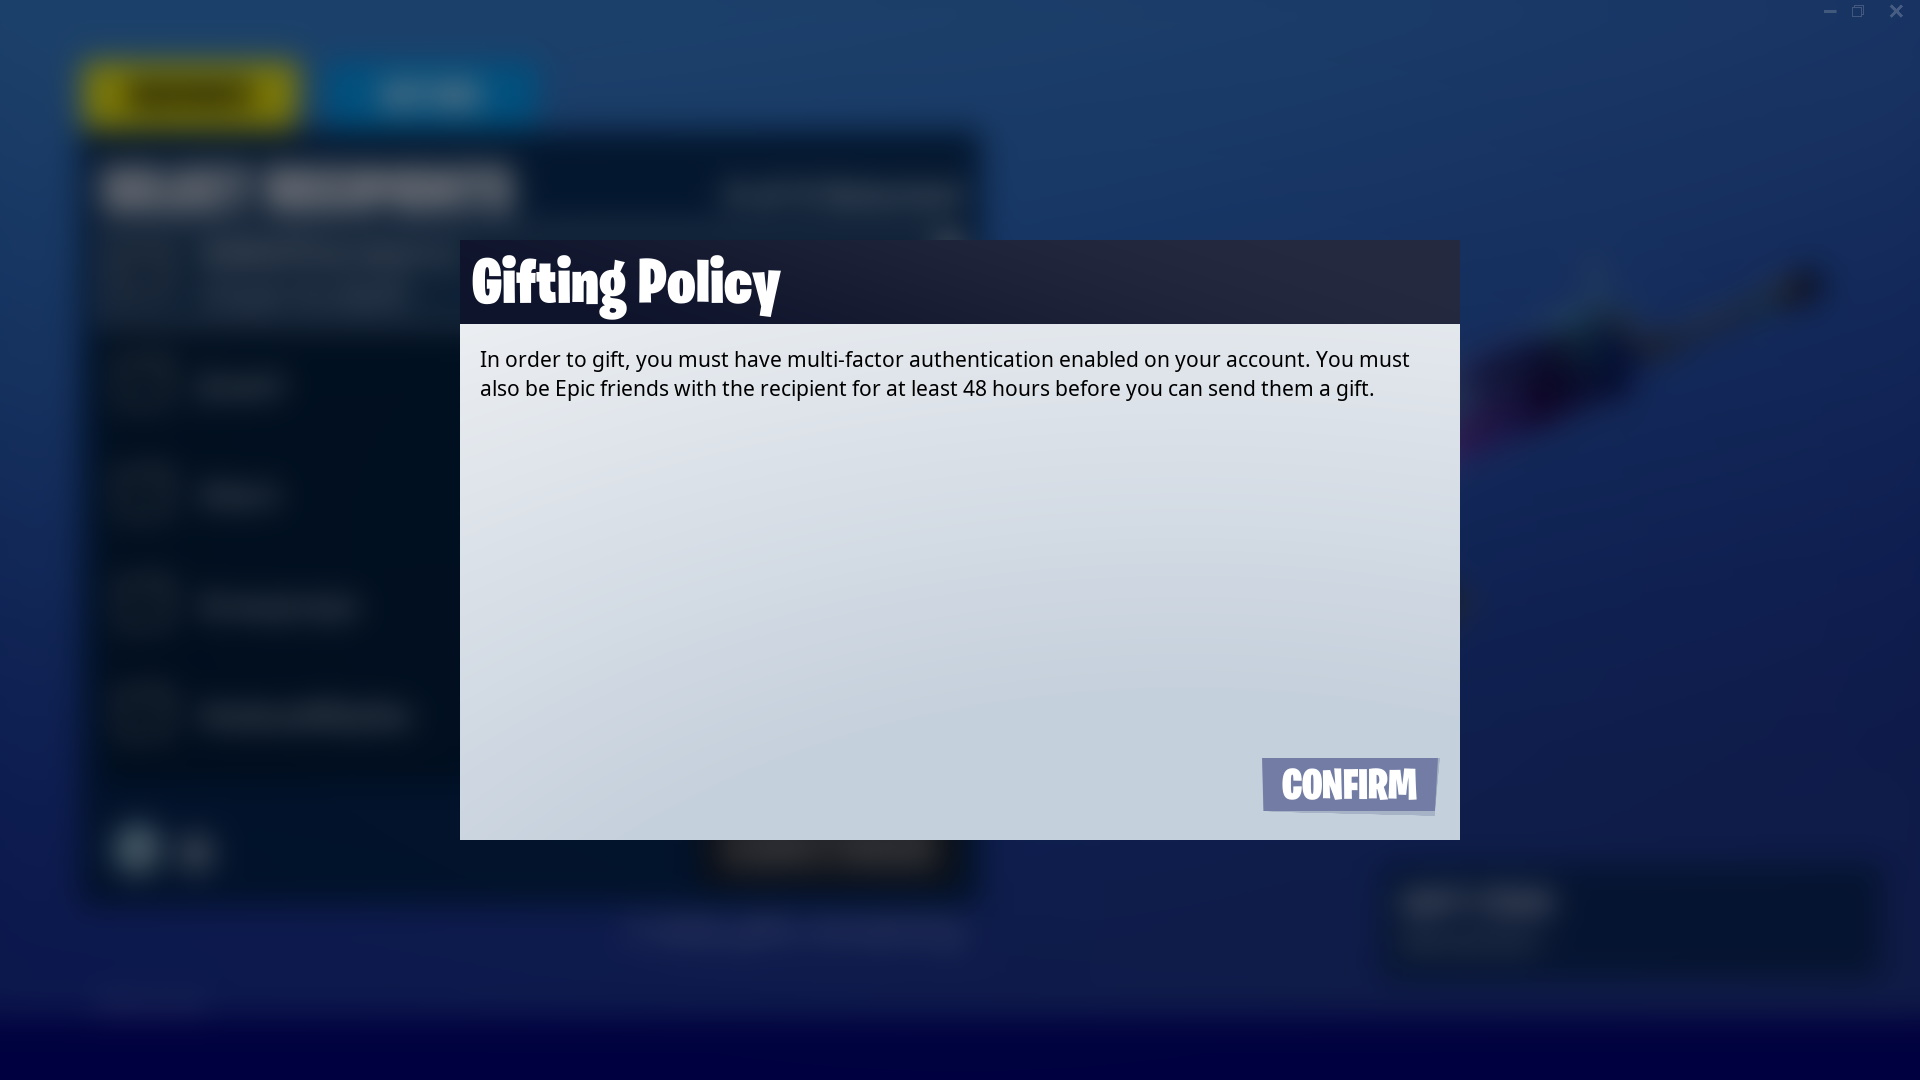 Will Skin Gifting Ever Come To Fortnite Fortnite Gifting Guide How To Gift Skins And Other Items Metabomb